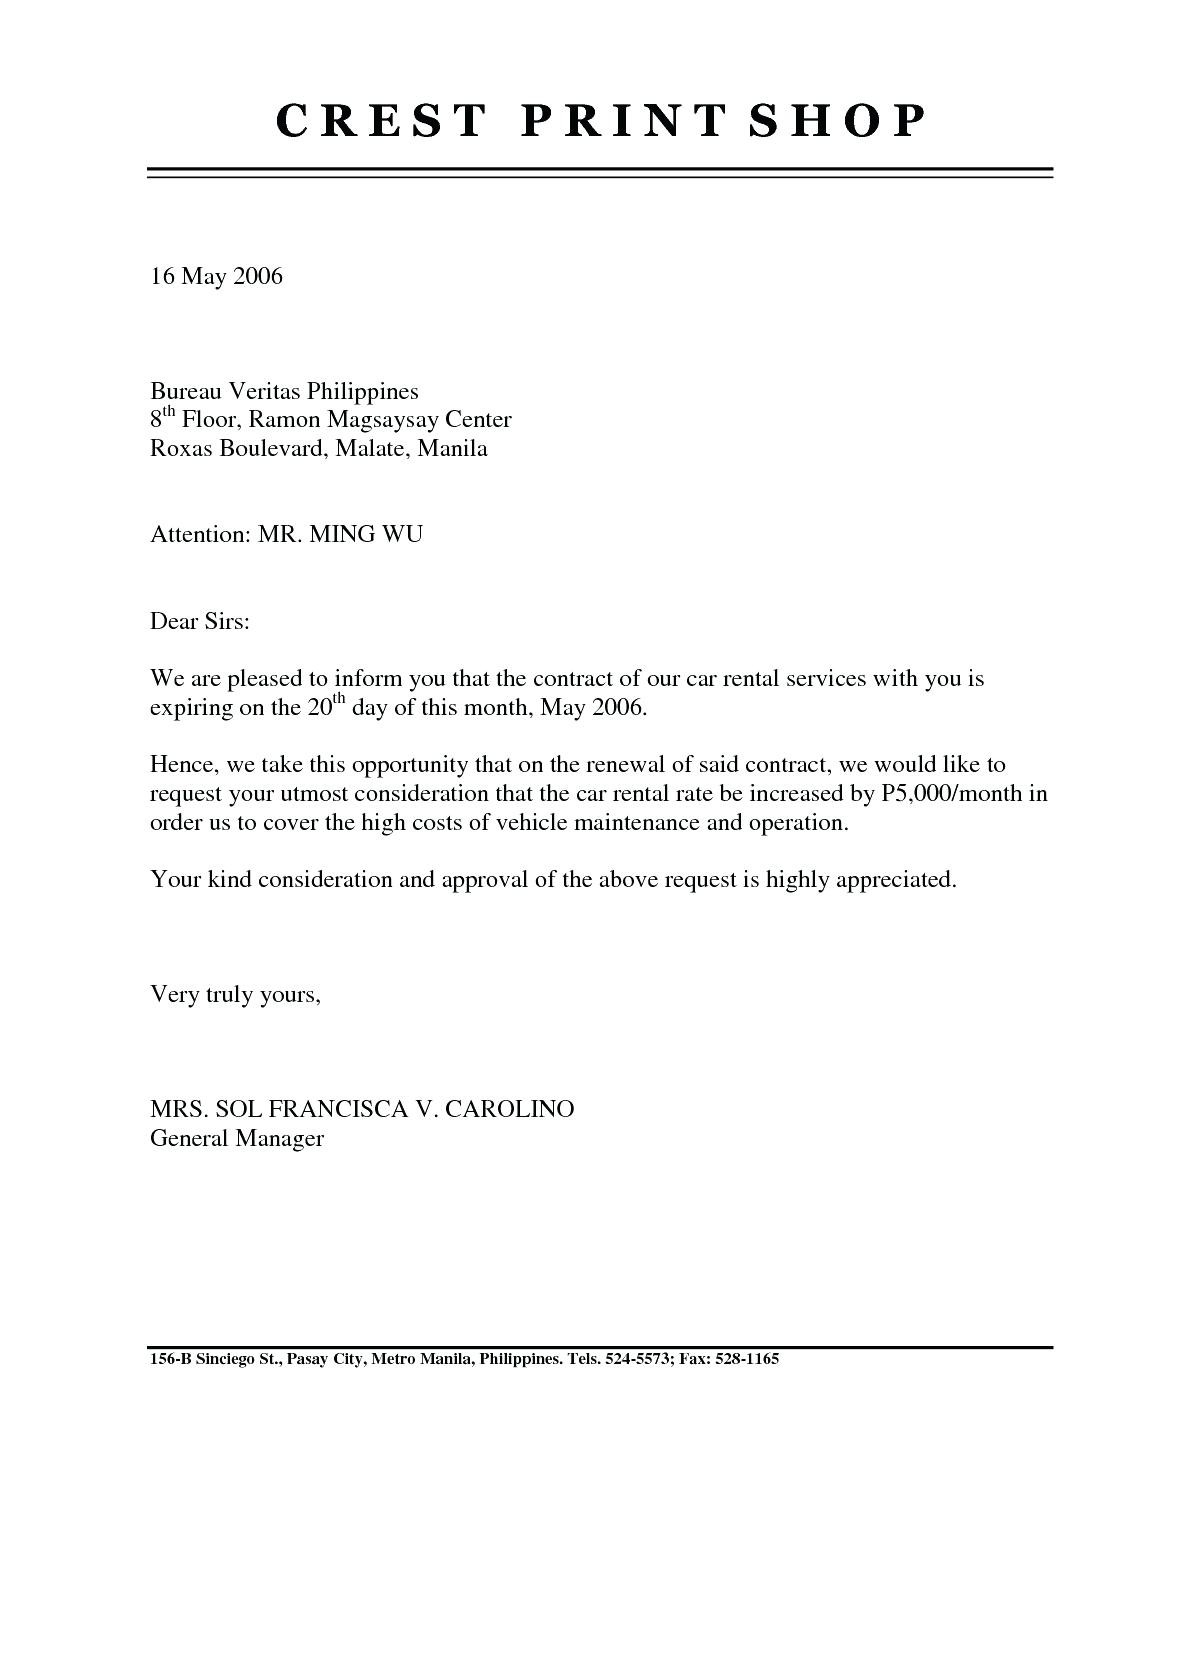 Tenancy Notice Letter Template - 20 Inspirational Terminate Tenancy Agreement Letter Sample